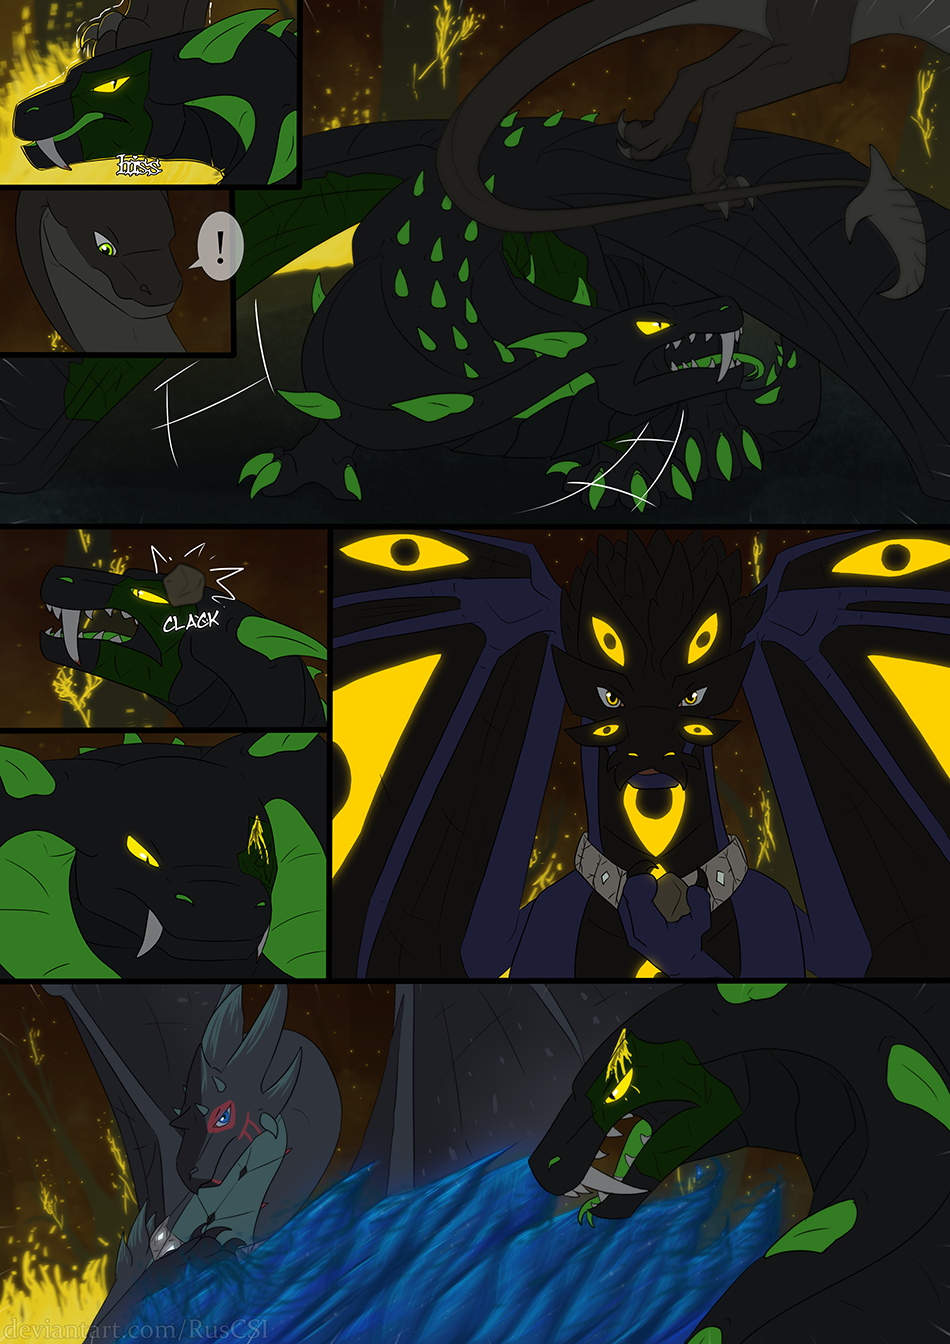 Courage of the cowardly dragon - page 55